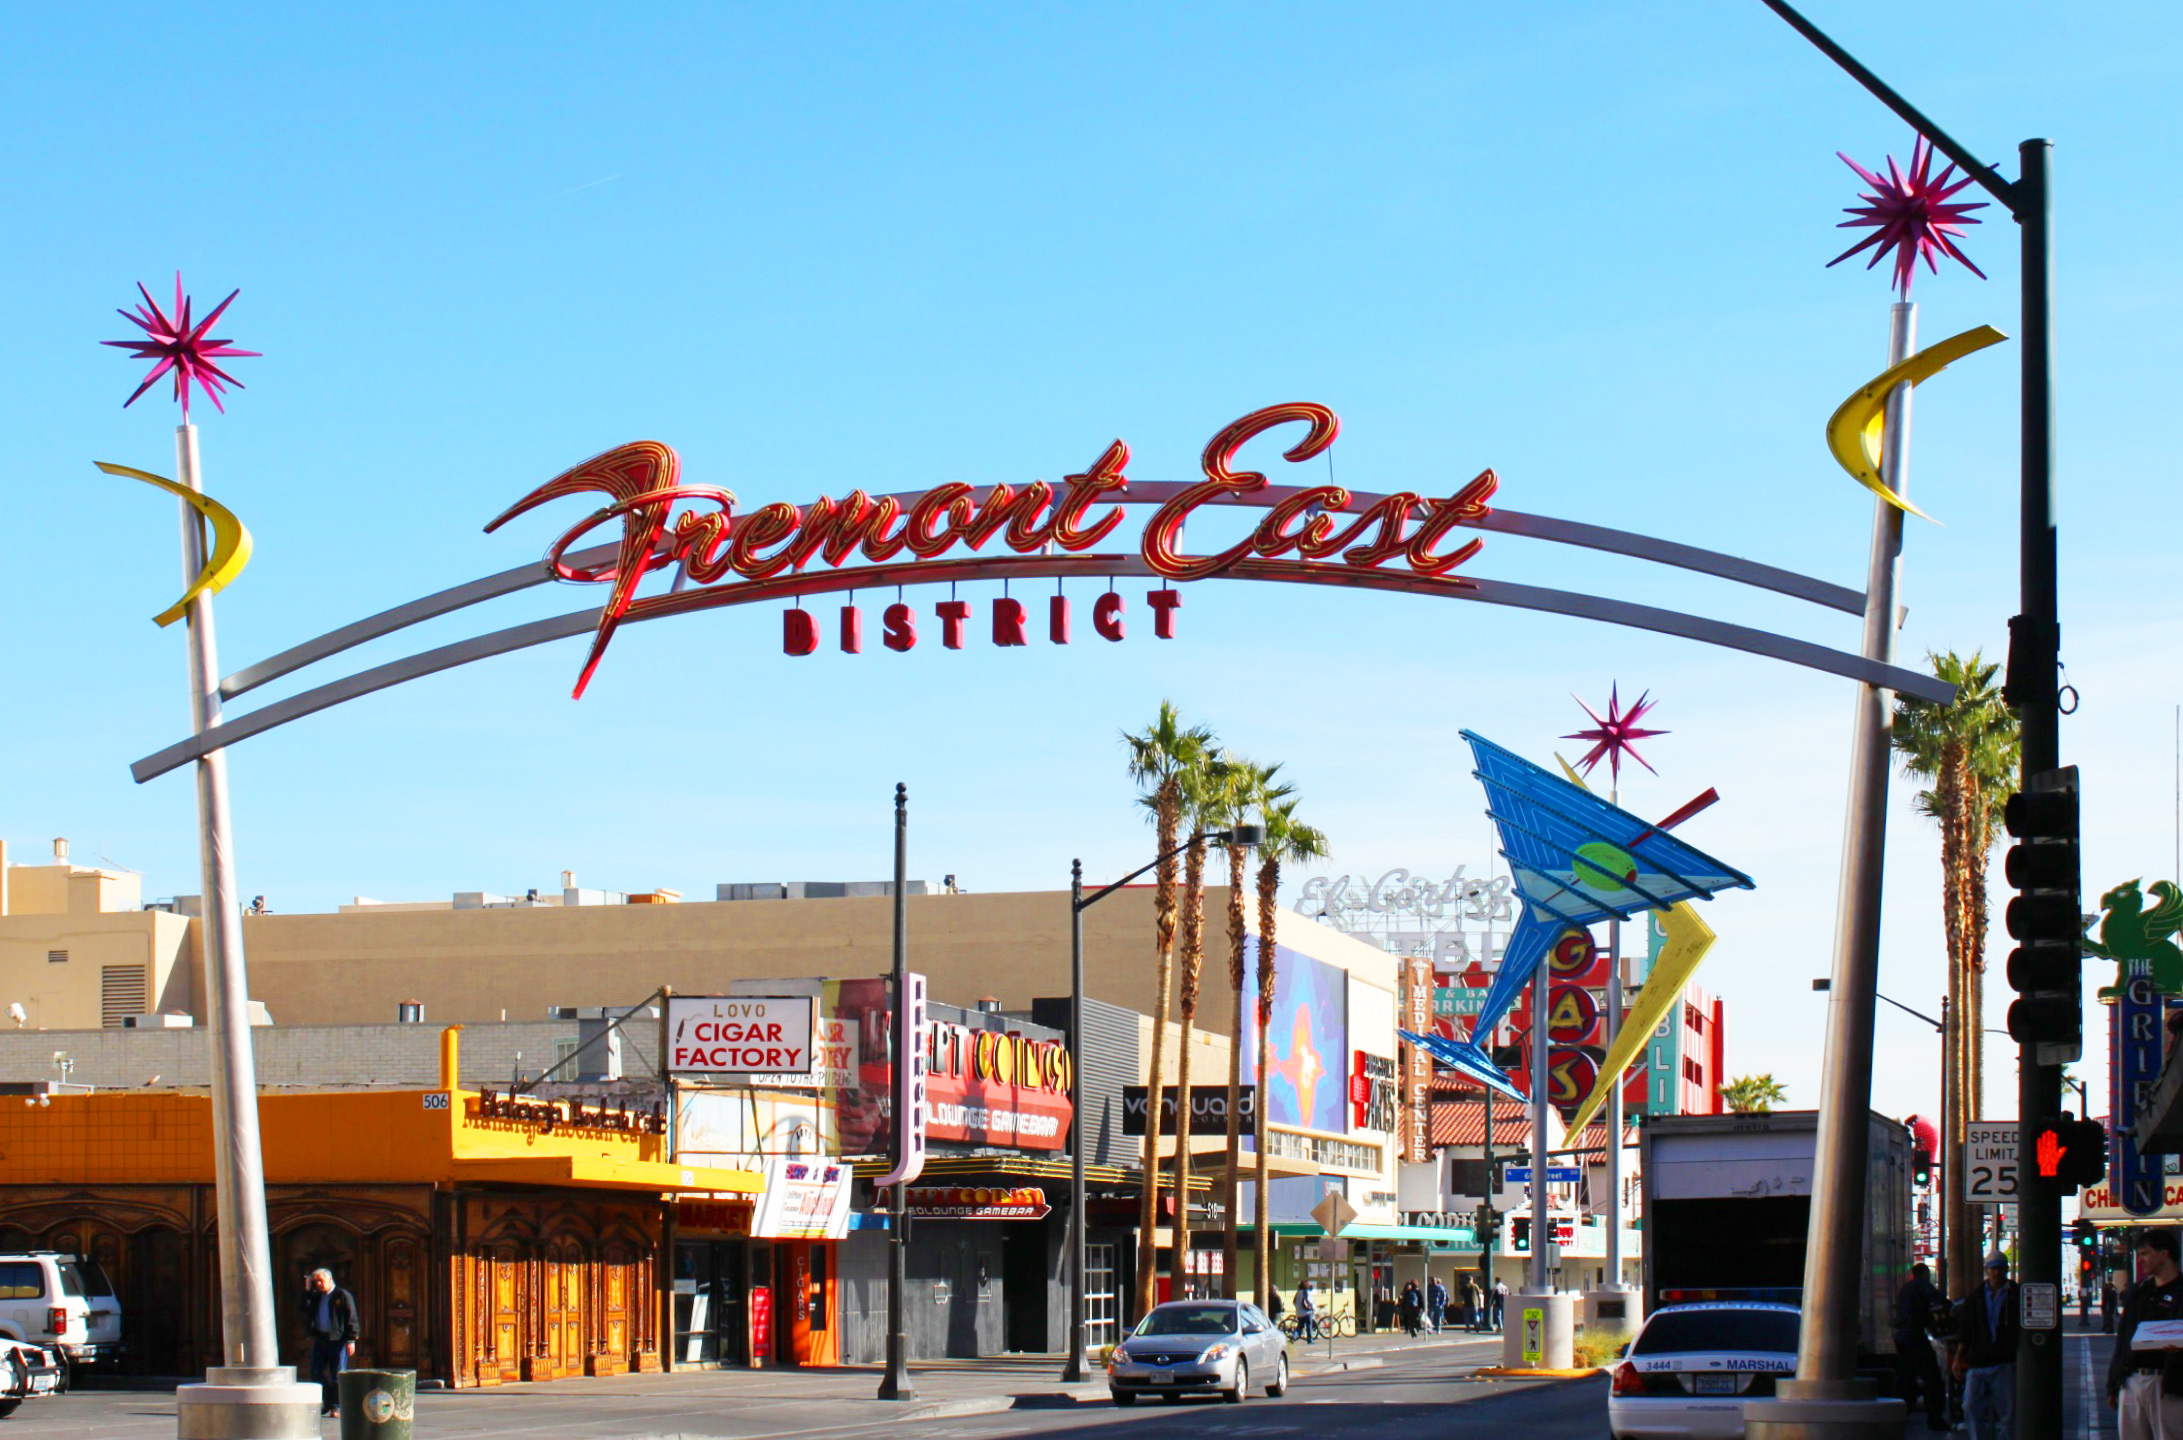 Daily Neon Fremont East District Daytime Las Vegas 360